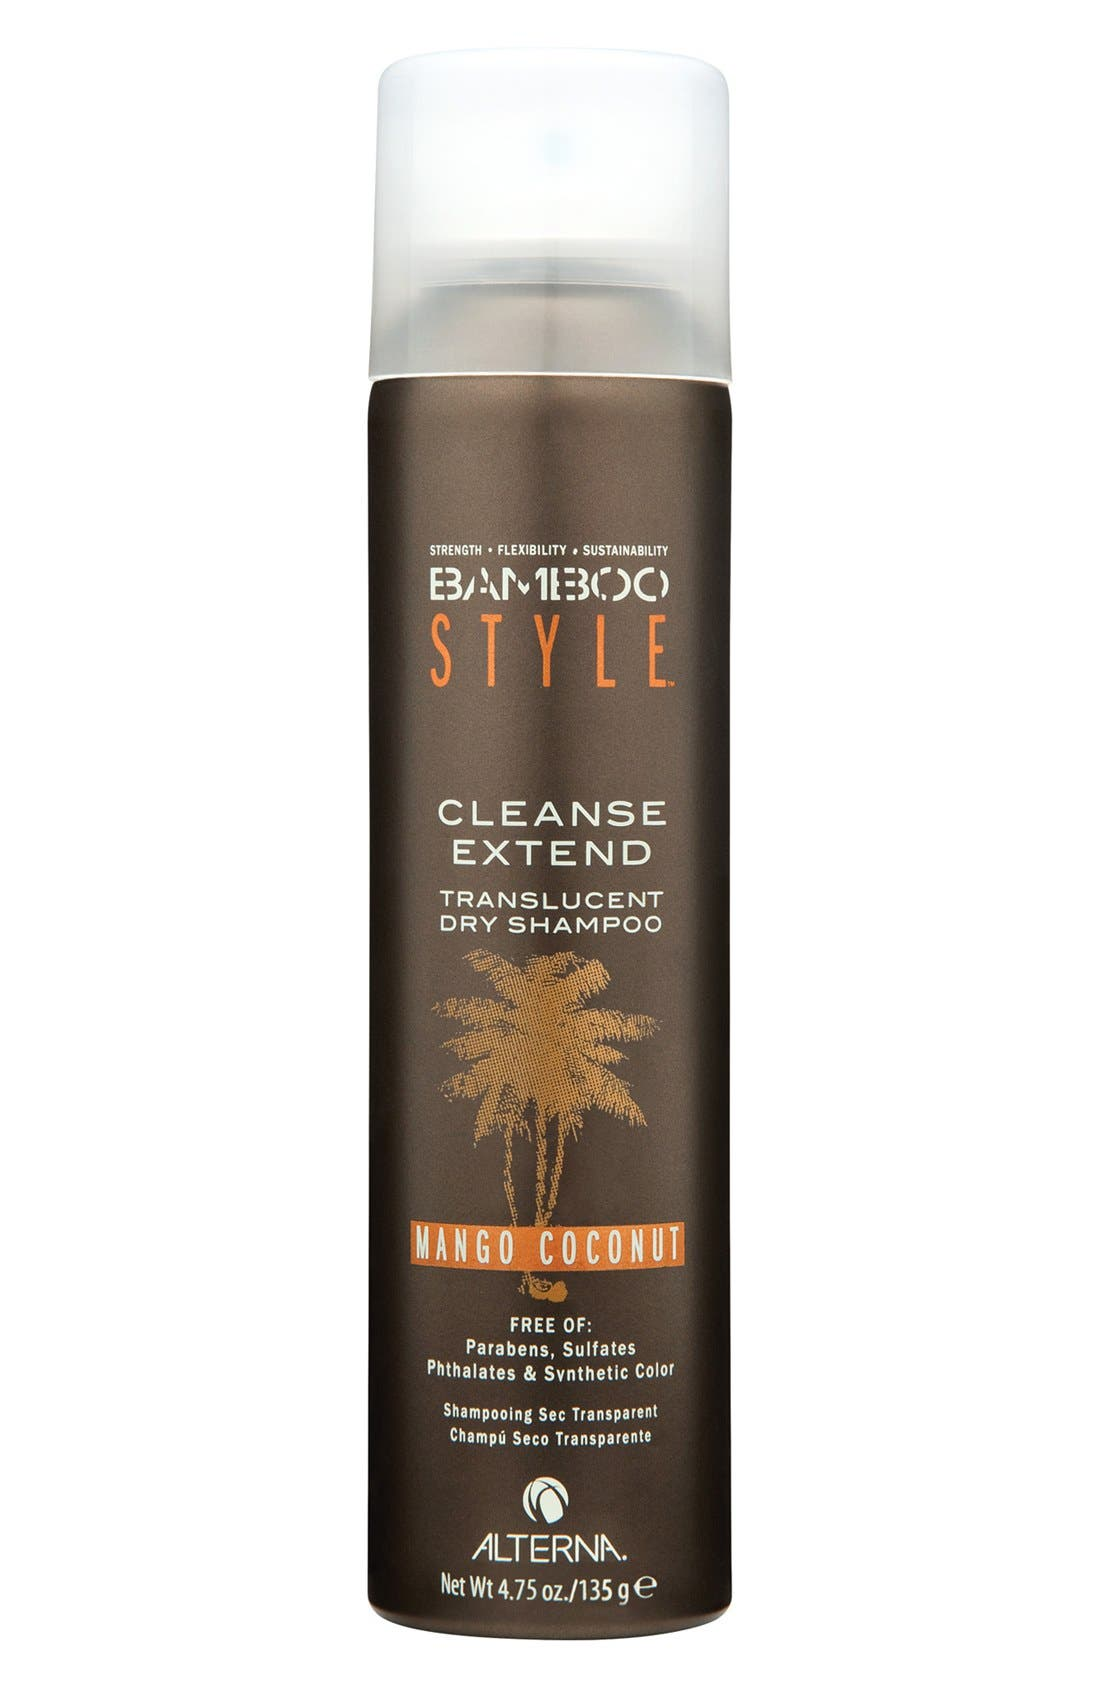 ALTERNA® Bamboo Style Cleanse Extend Translucent Dry Shampoo